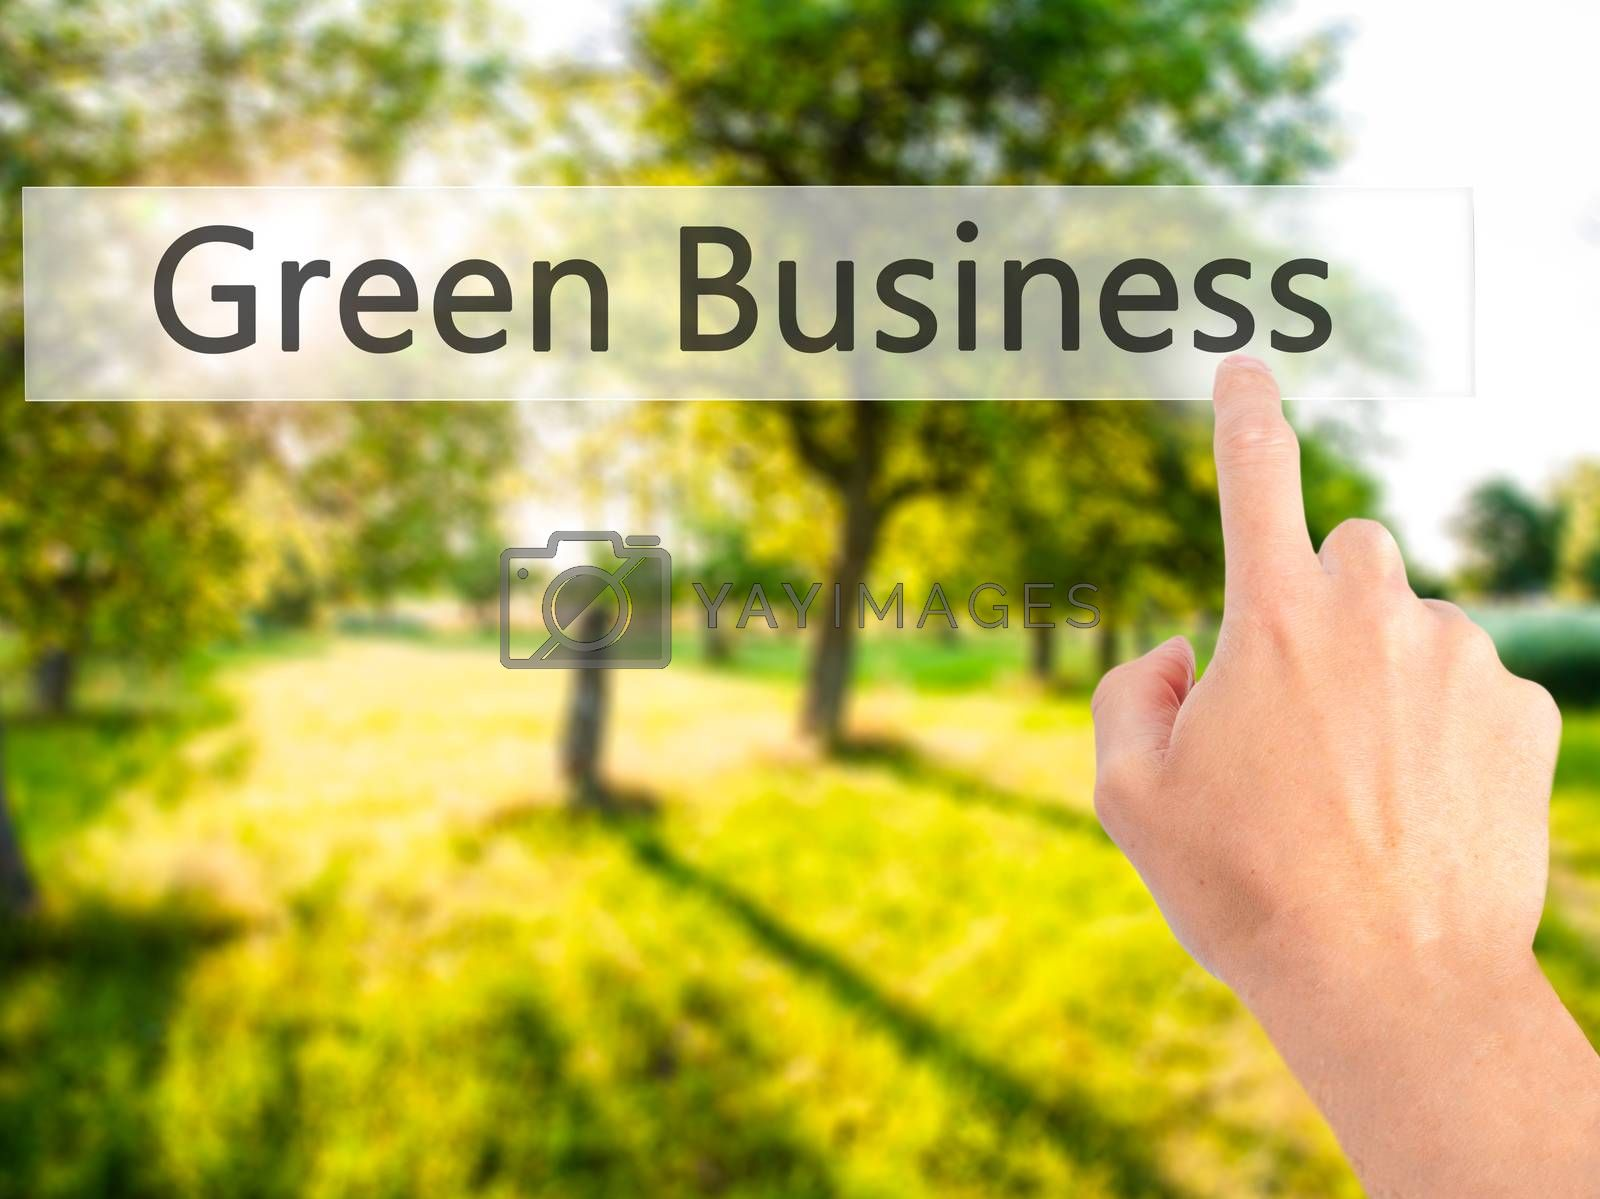 Green Business  - Hand pressing a button on blurred background c by jackald